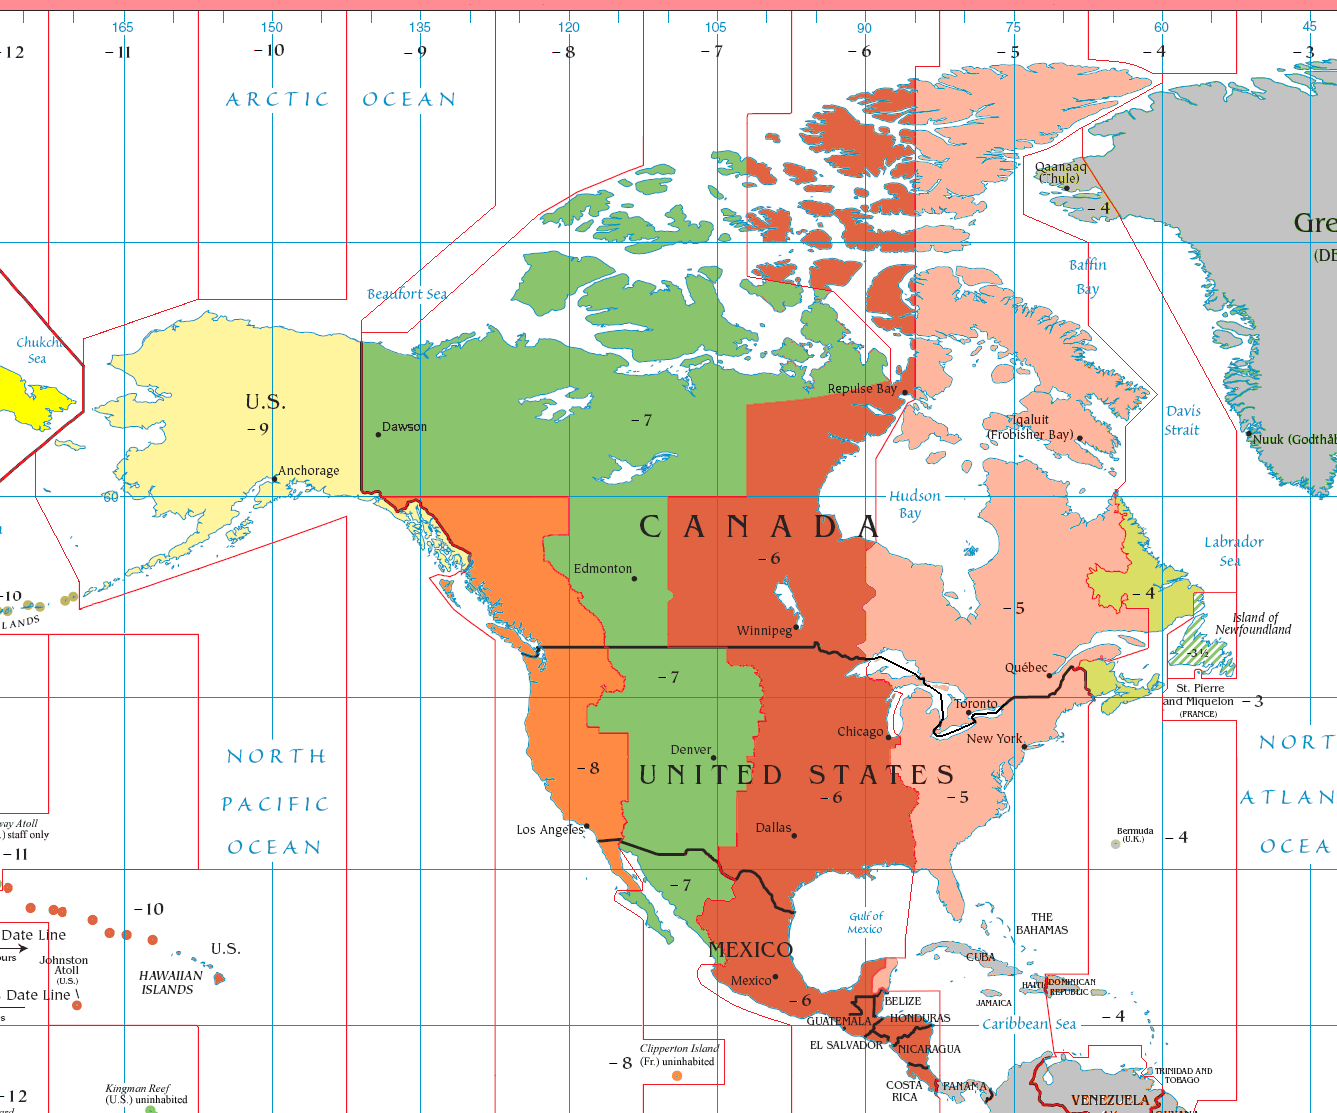 Mountain Time Zone - Wikipedia on united states of america, western united states map, cleveland united states map, us area code map, eastern united states map, printable labeled united states map, united states outline map, tornado activity in the united states map, black population united states map, united states region map, united states zone 4, united states gmt map, united states hour map, state of west virginia counties map, mississippi river map, united states pacific map, world map, united states atlas road map, 50 states map, united states division map,